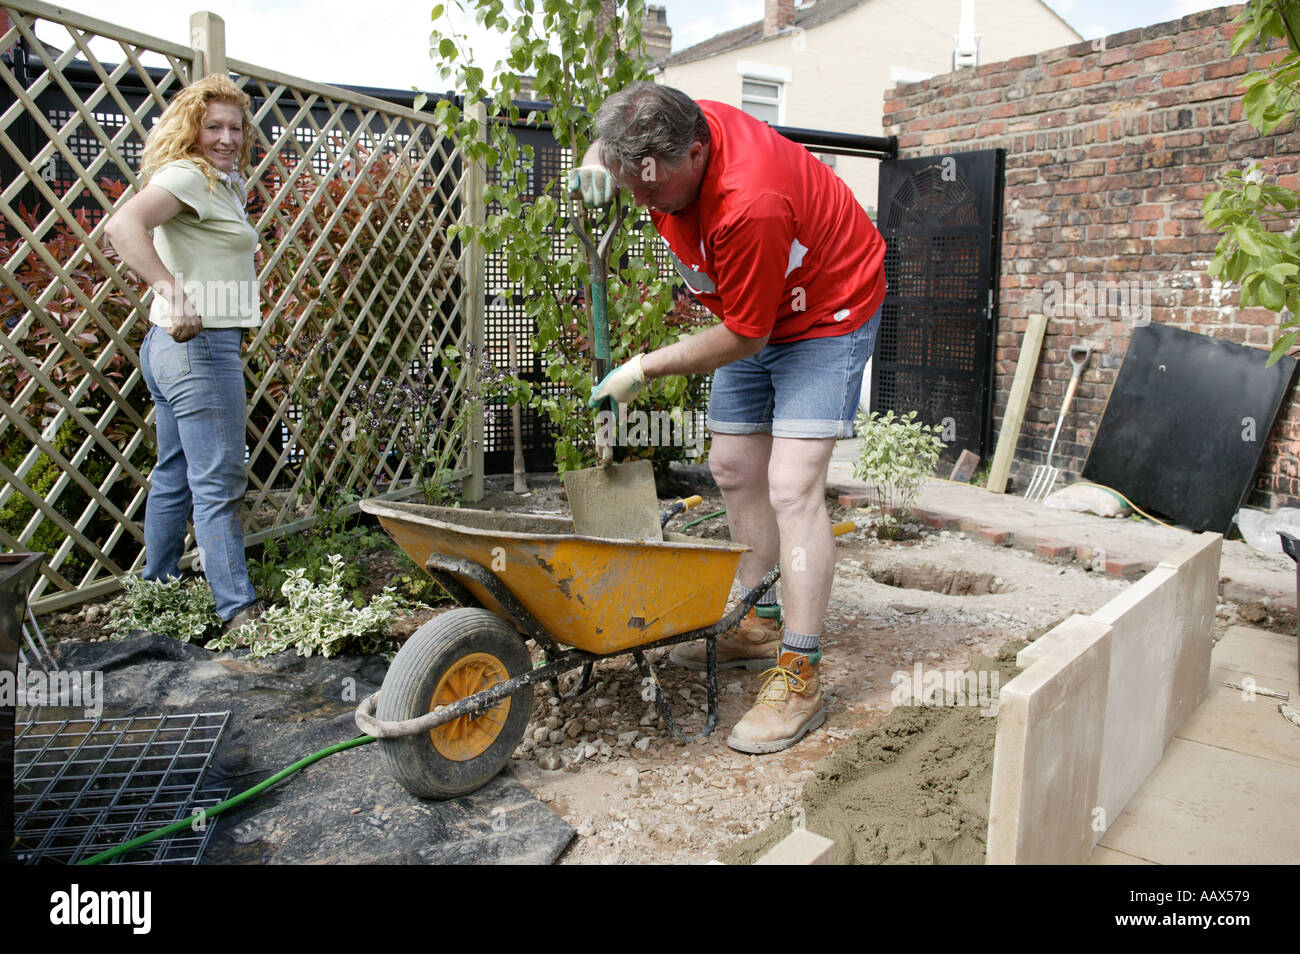 Charlie dimmock and tommy walsh working on a garden a for Ground force garden designs